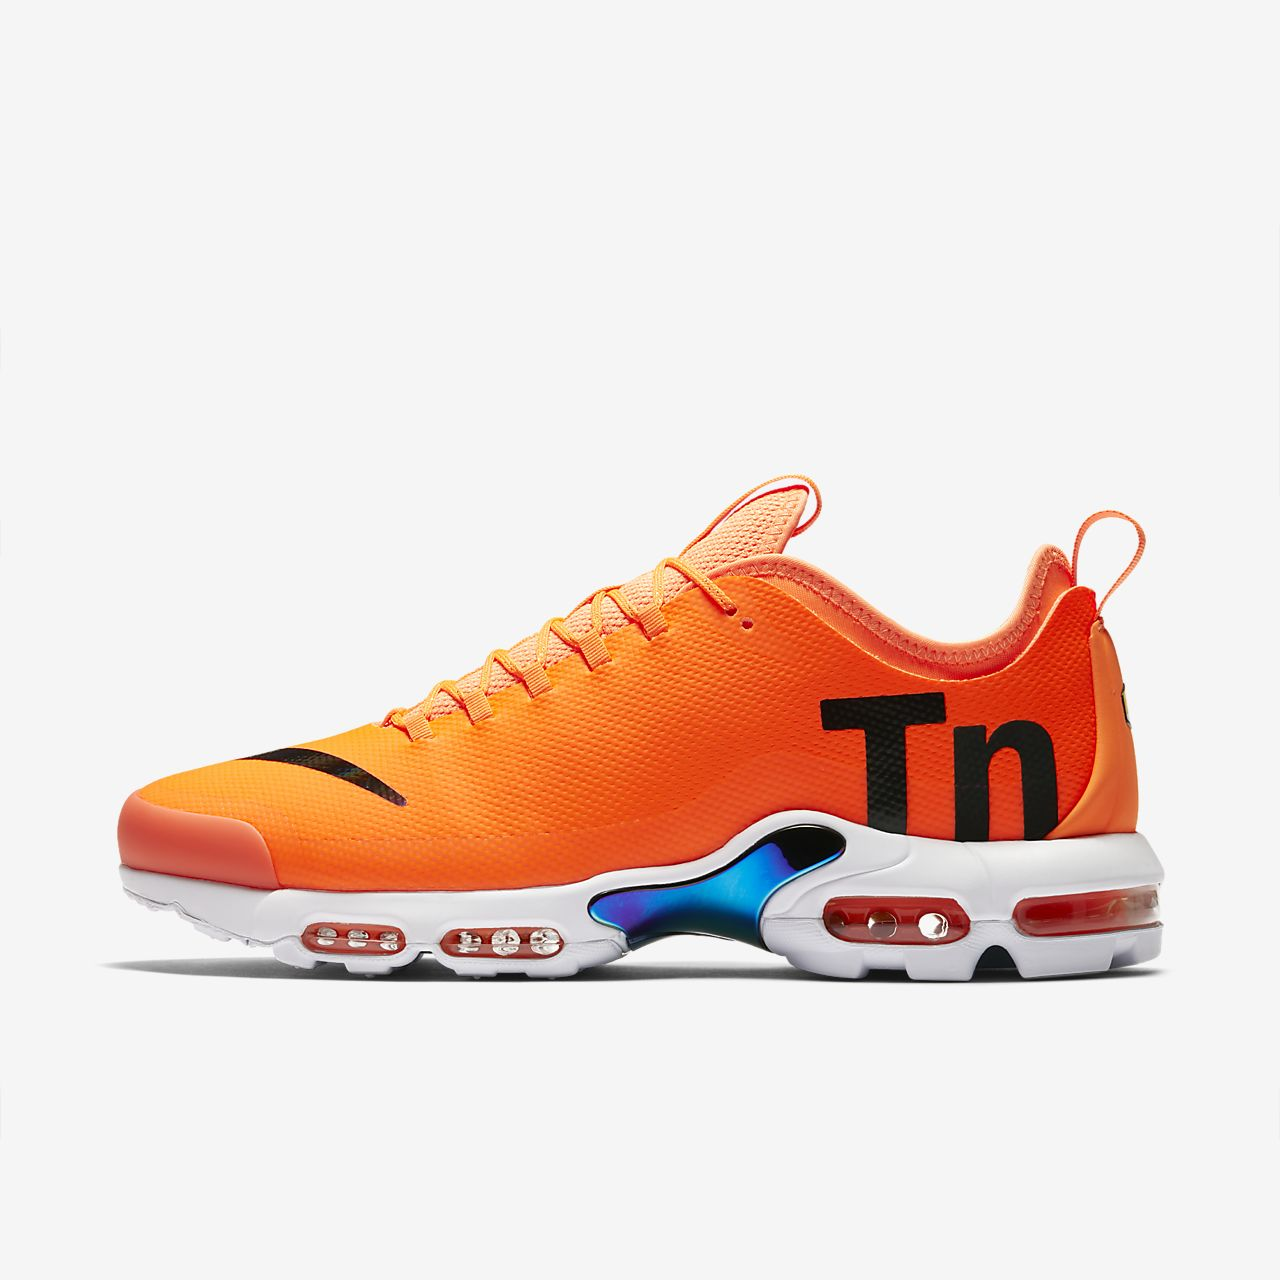 Nike Air Max Plus TN Ultra SE Men's Shoe